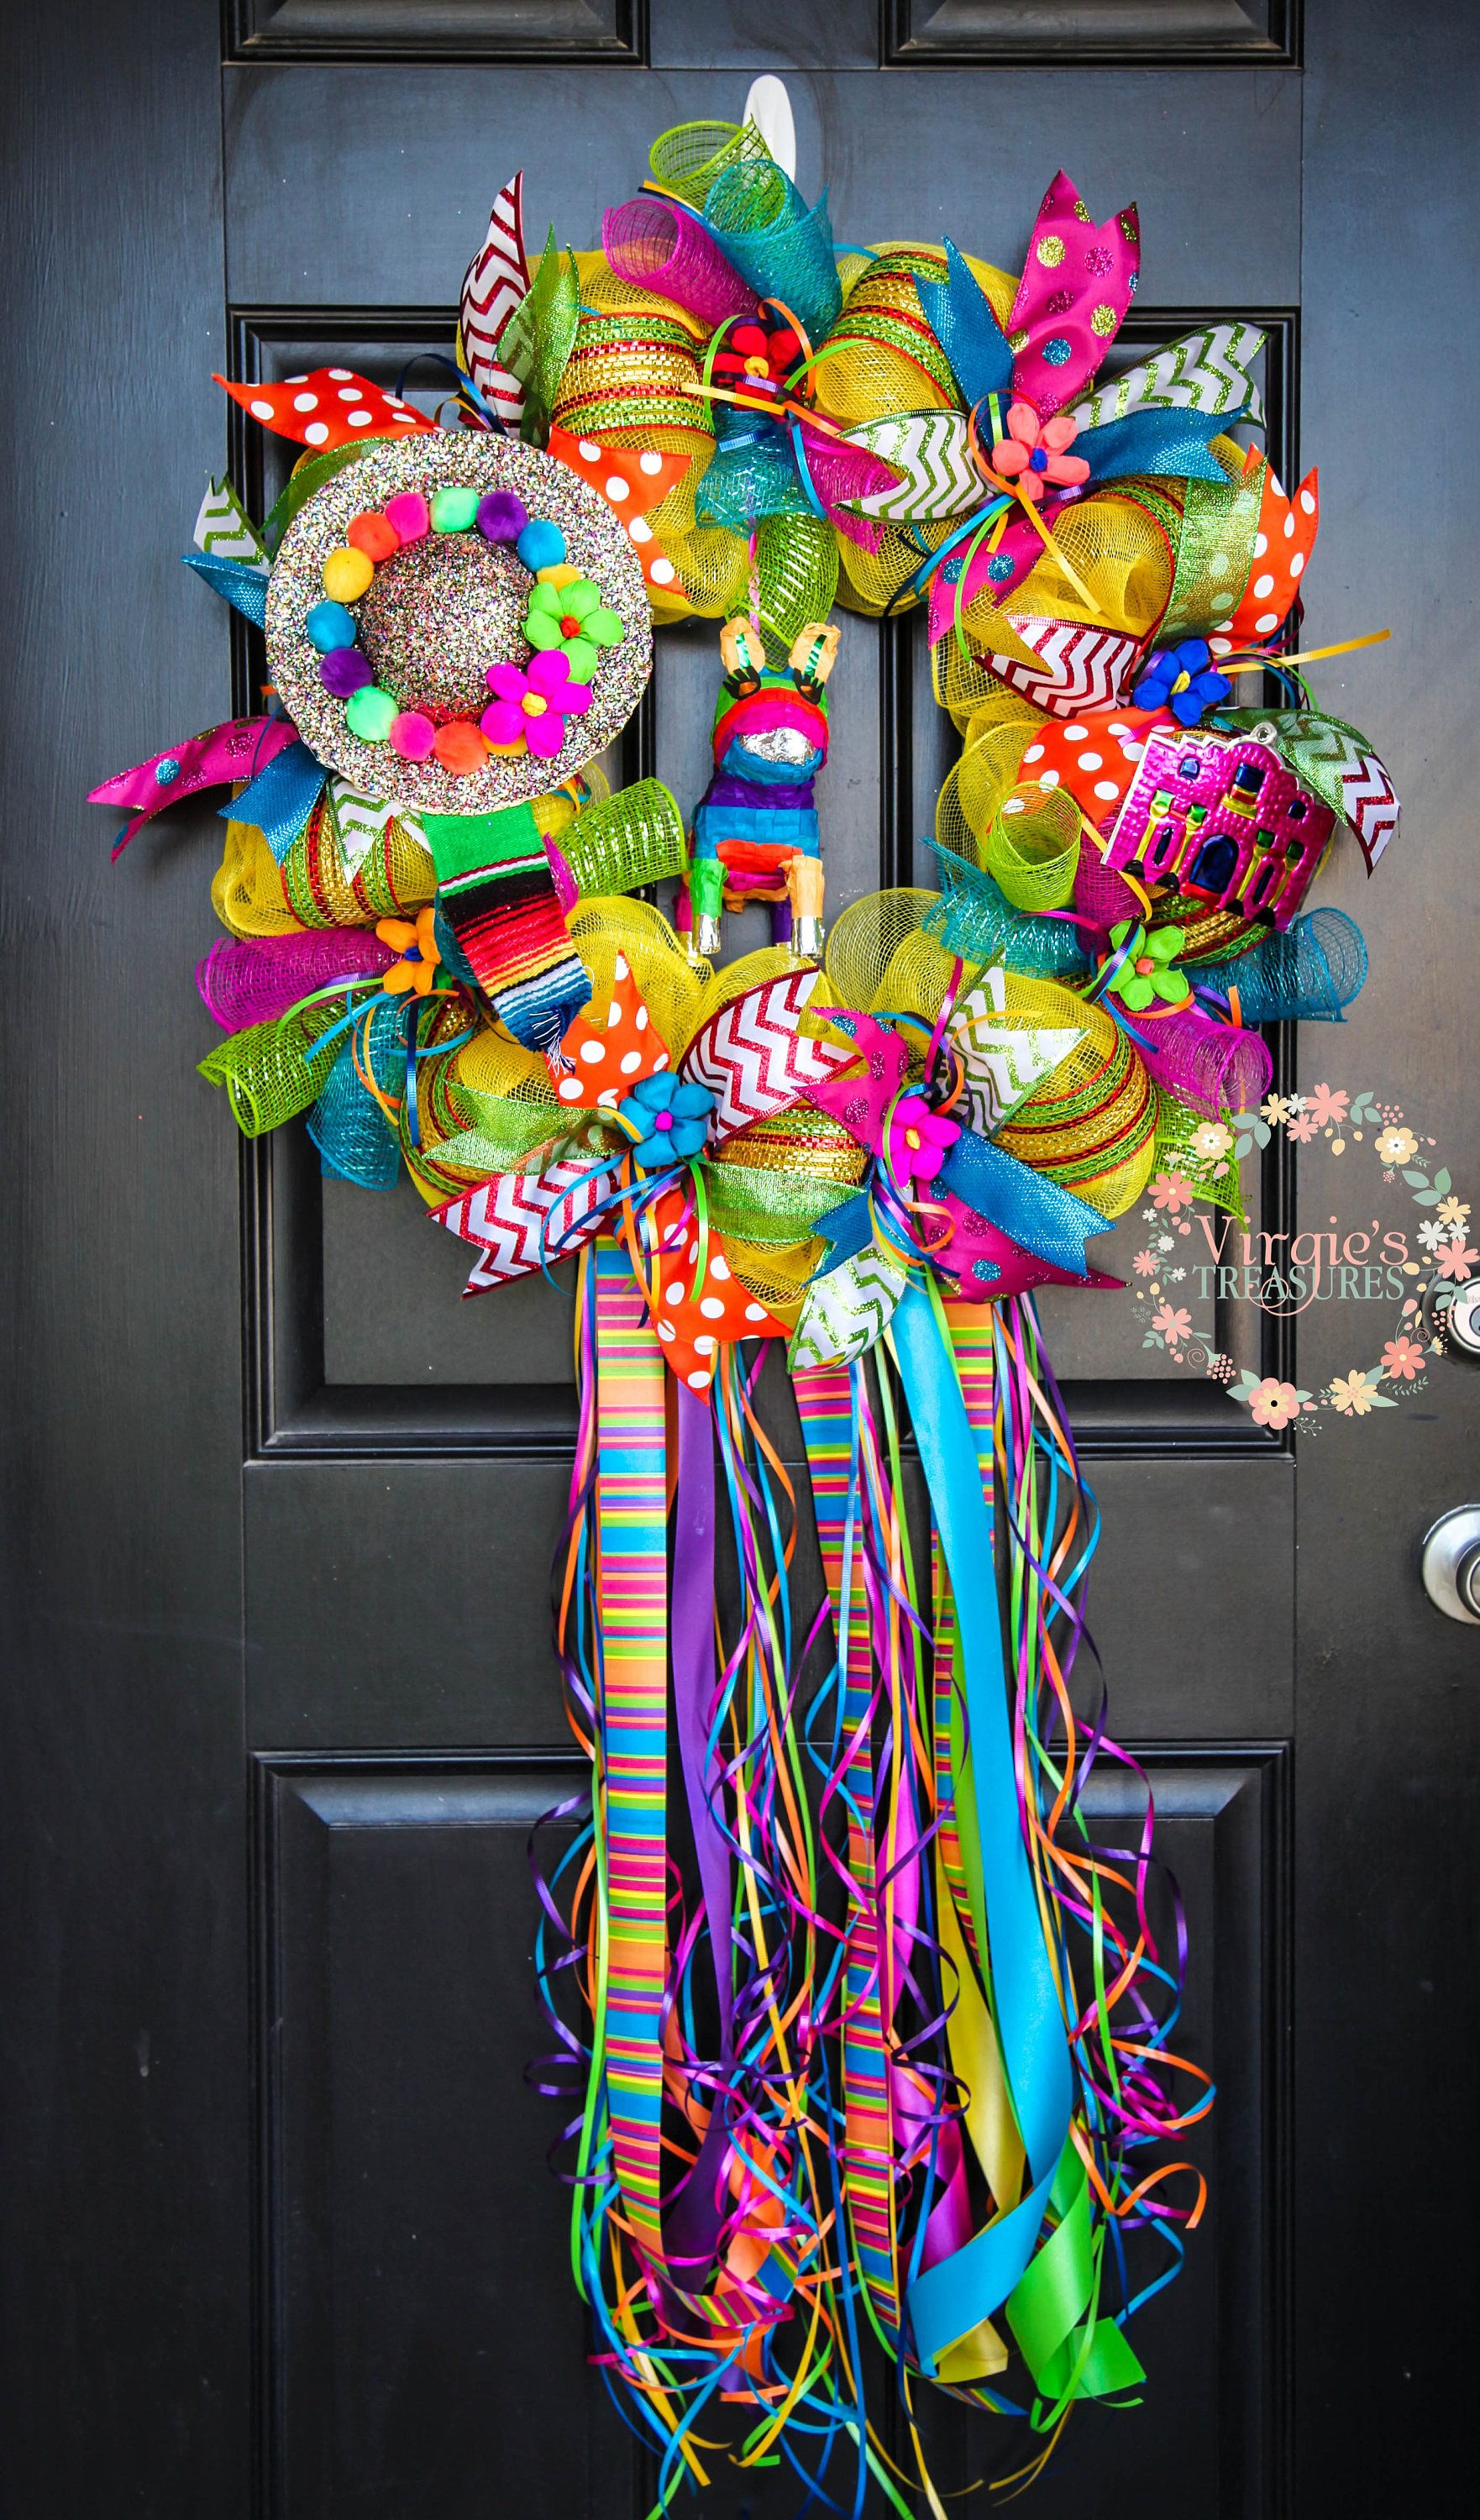 Fiesta Wreath 2018 Viva San Antonio Glitter Sombrero Deco Mesh With Streamers And Ribbons Party Theme By